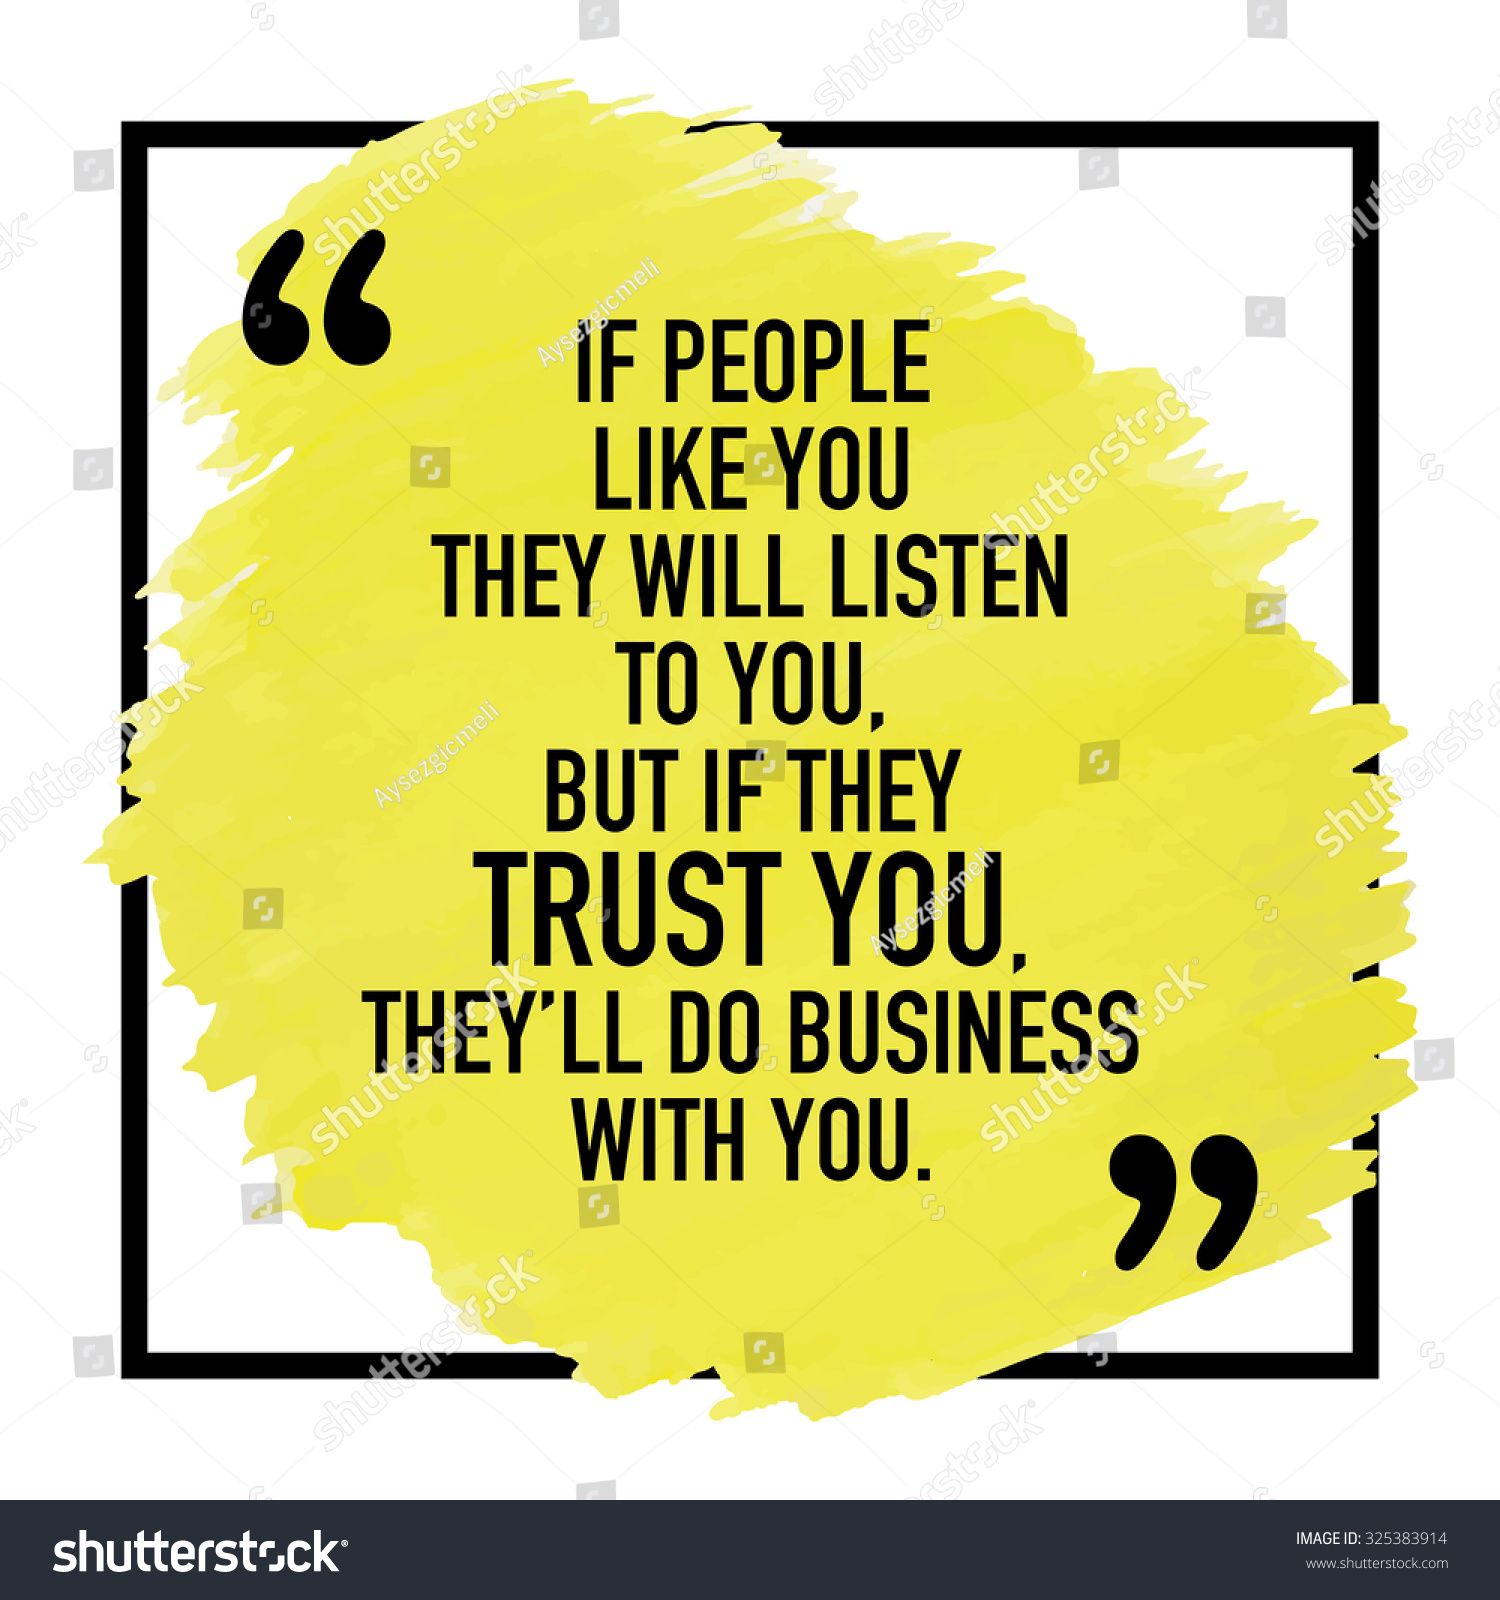 Trust In Business Quotes: Inspirational Motivational Quote Phrase About Business